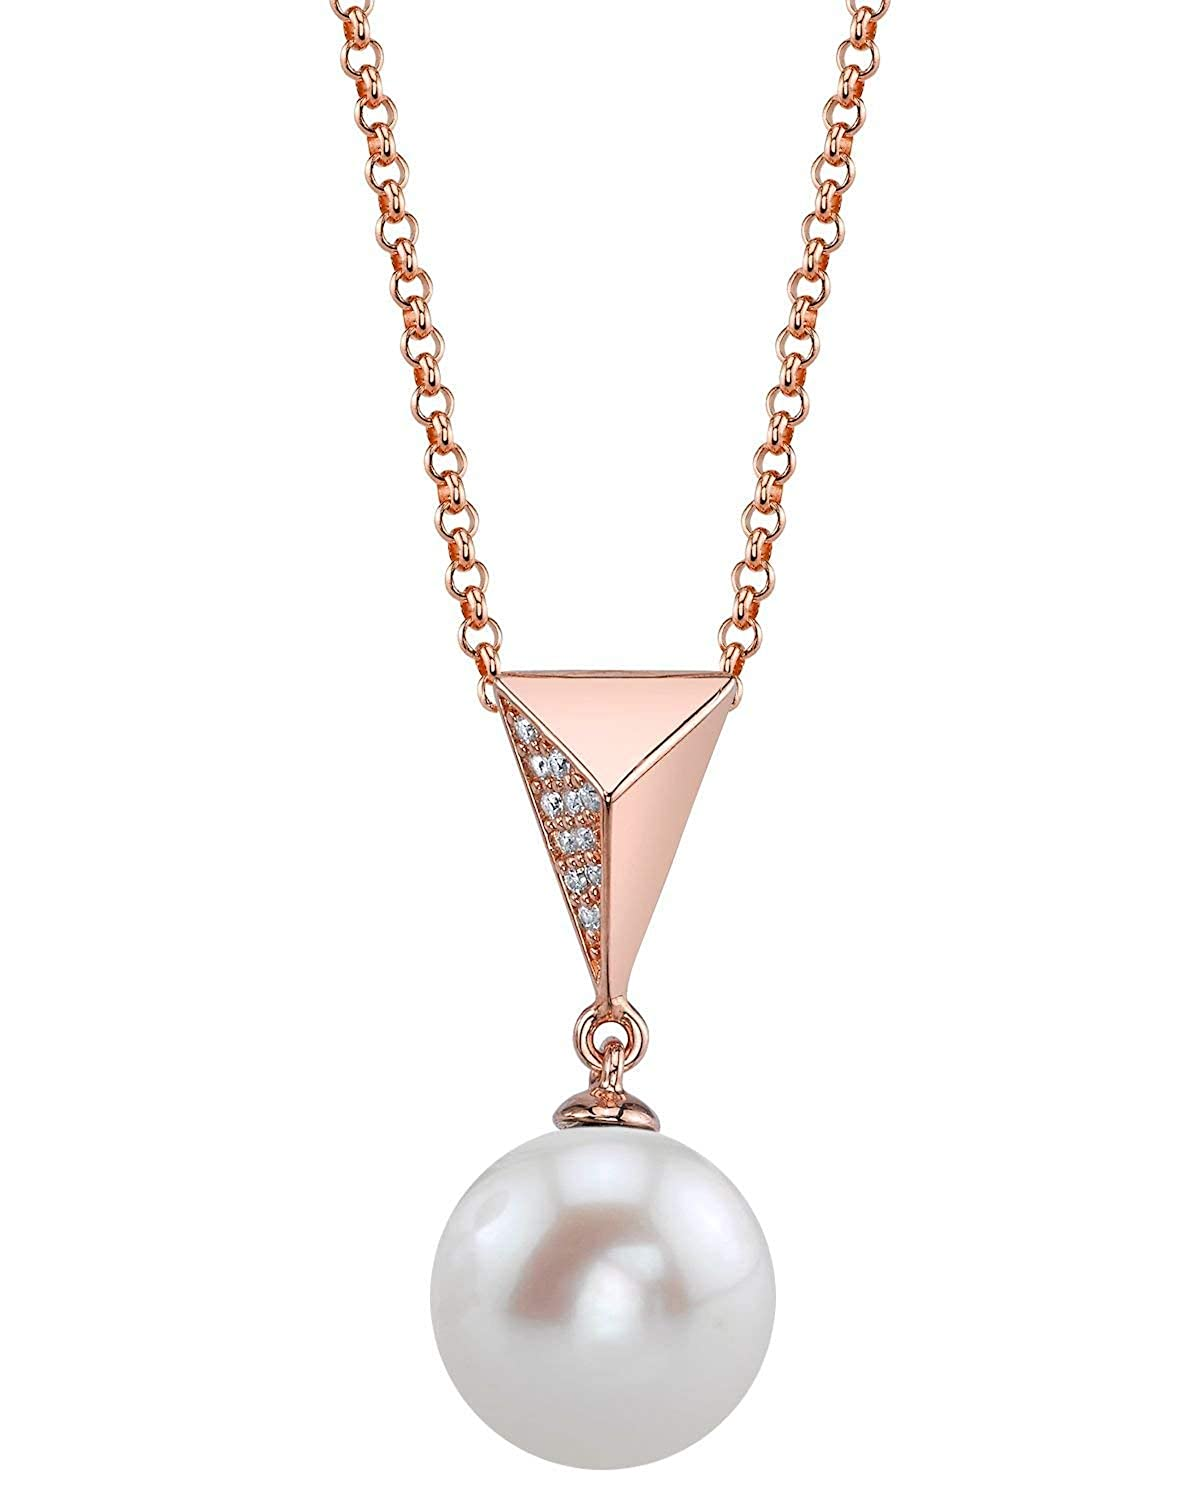 THE PEARL SOURCE 8-9mm Genuine Freshwater Cultured Pearl Becky Pendant Necklace for Women